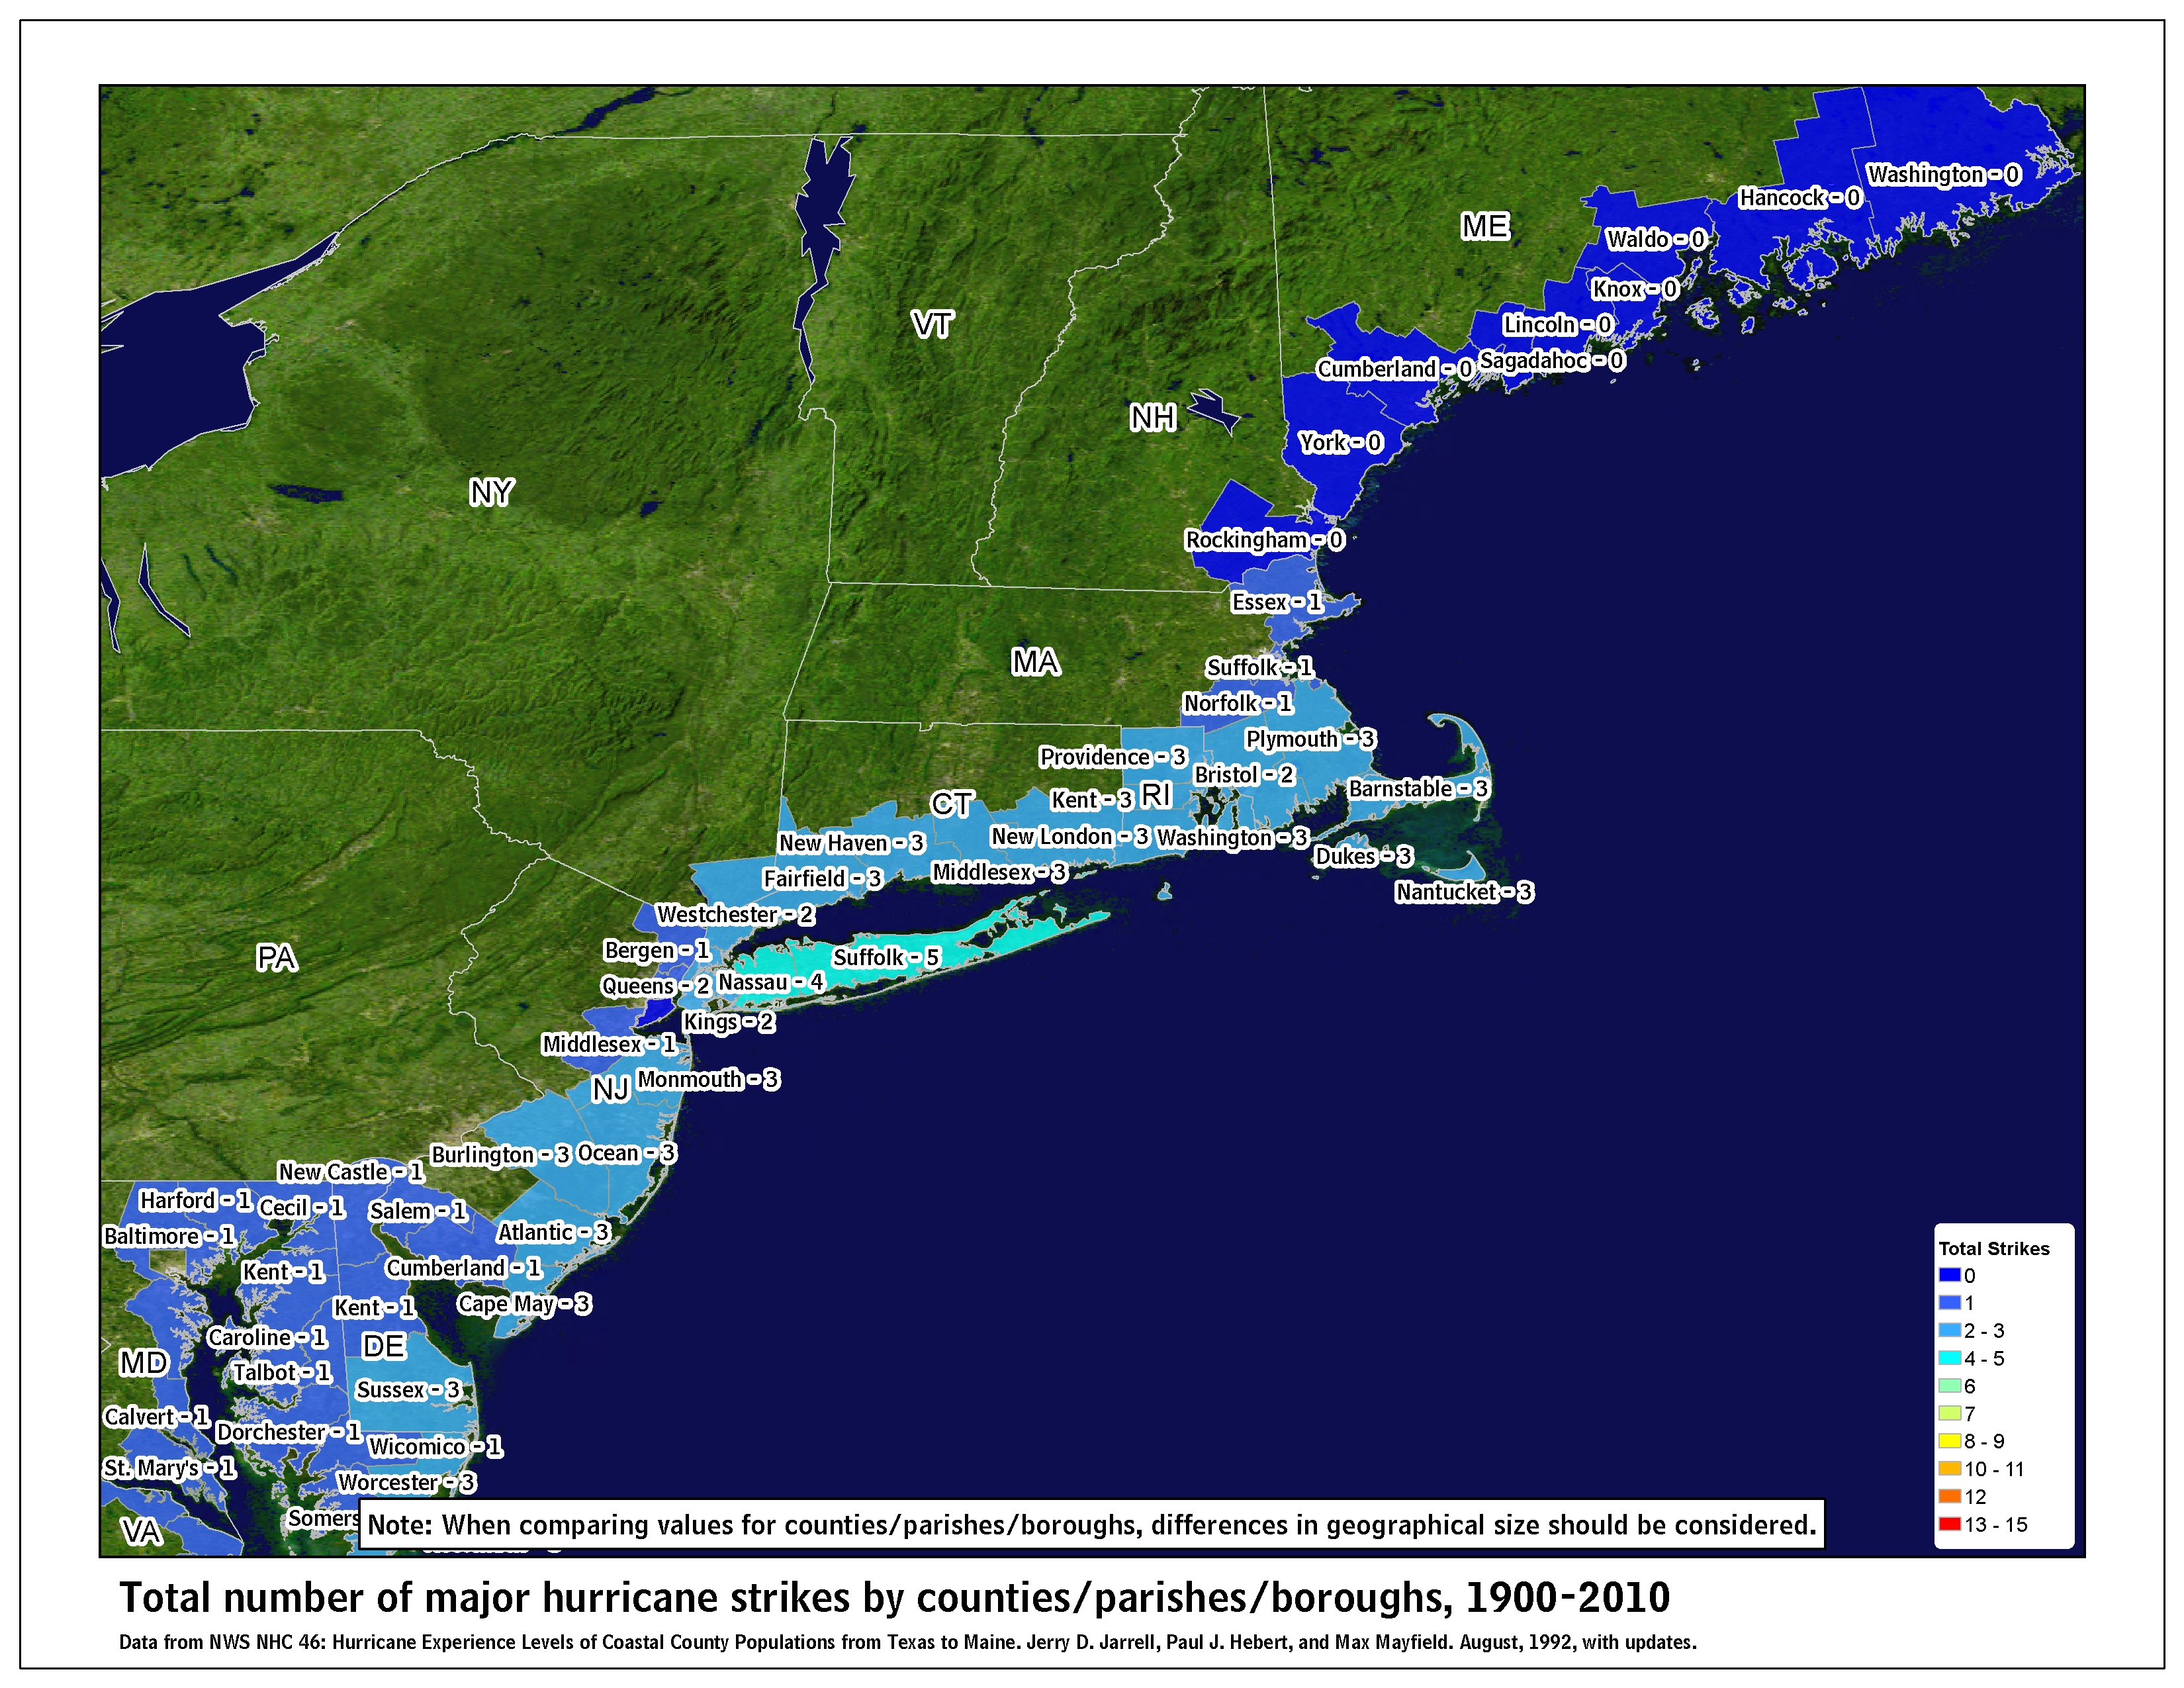 map of 1900 2010 major hurricane strikes by u s counties parishes northeast